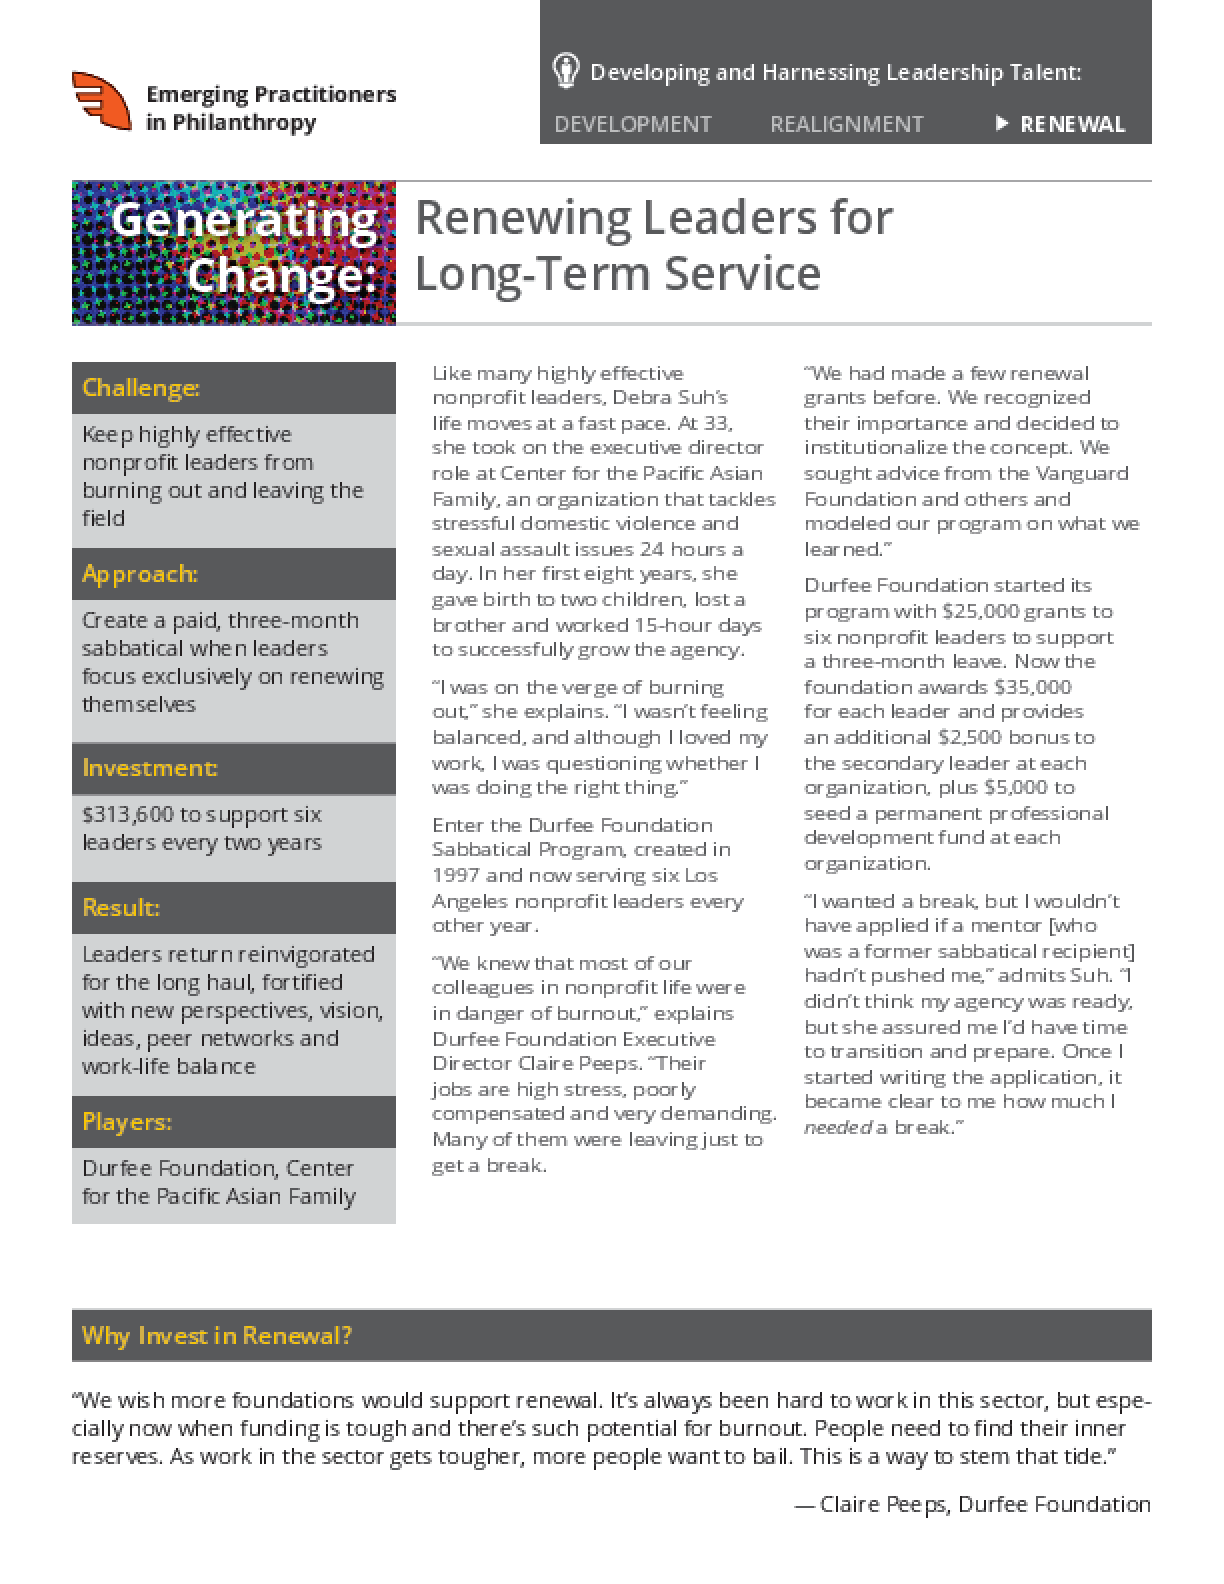 Generating Change: Renewing Leaders for Long-Term Service